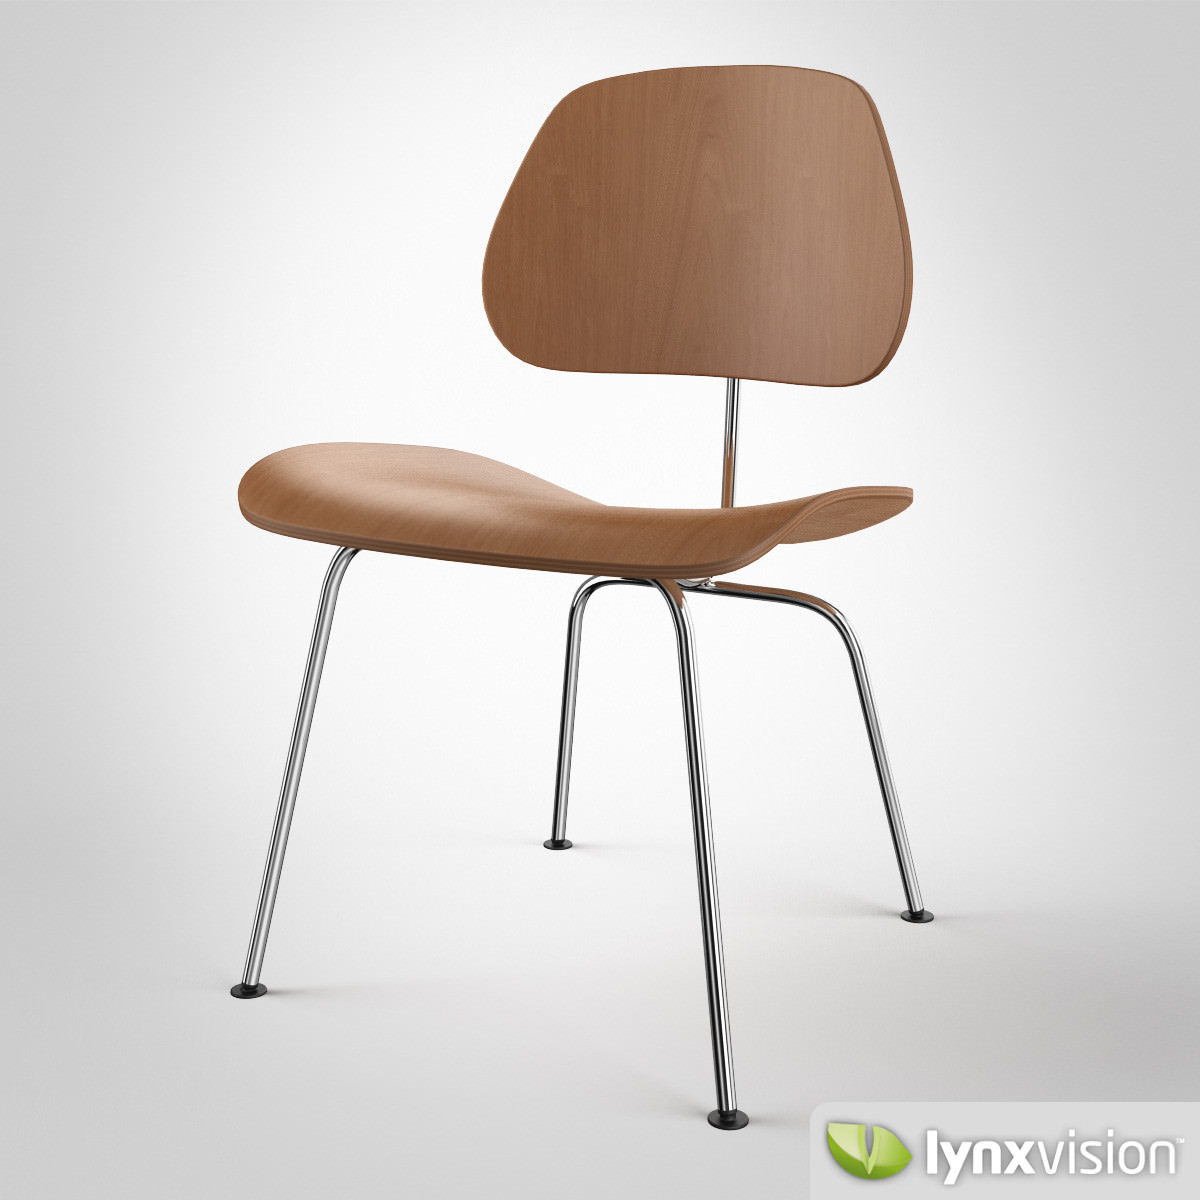 Charles & Ray Eames Sessel Dcm Chair By Charles Ray Eames 3d Model